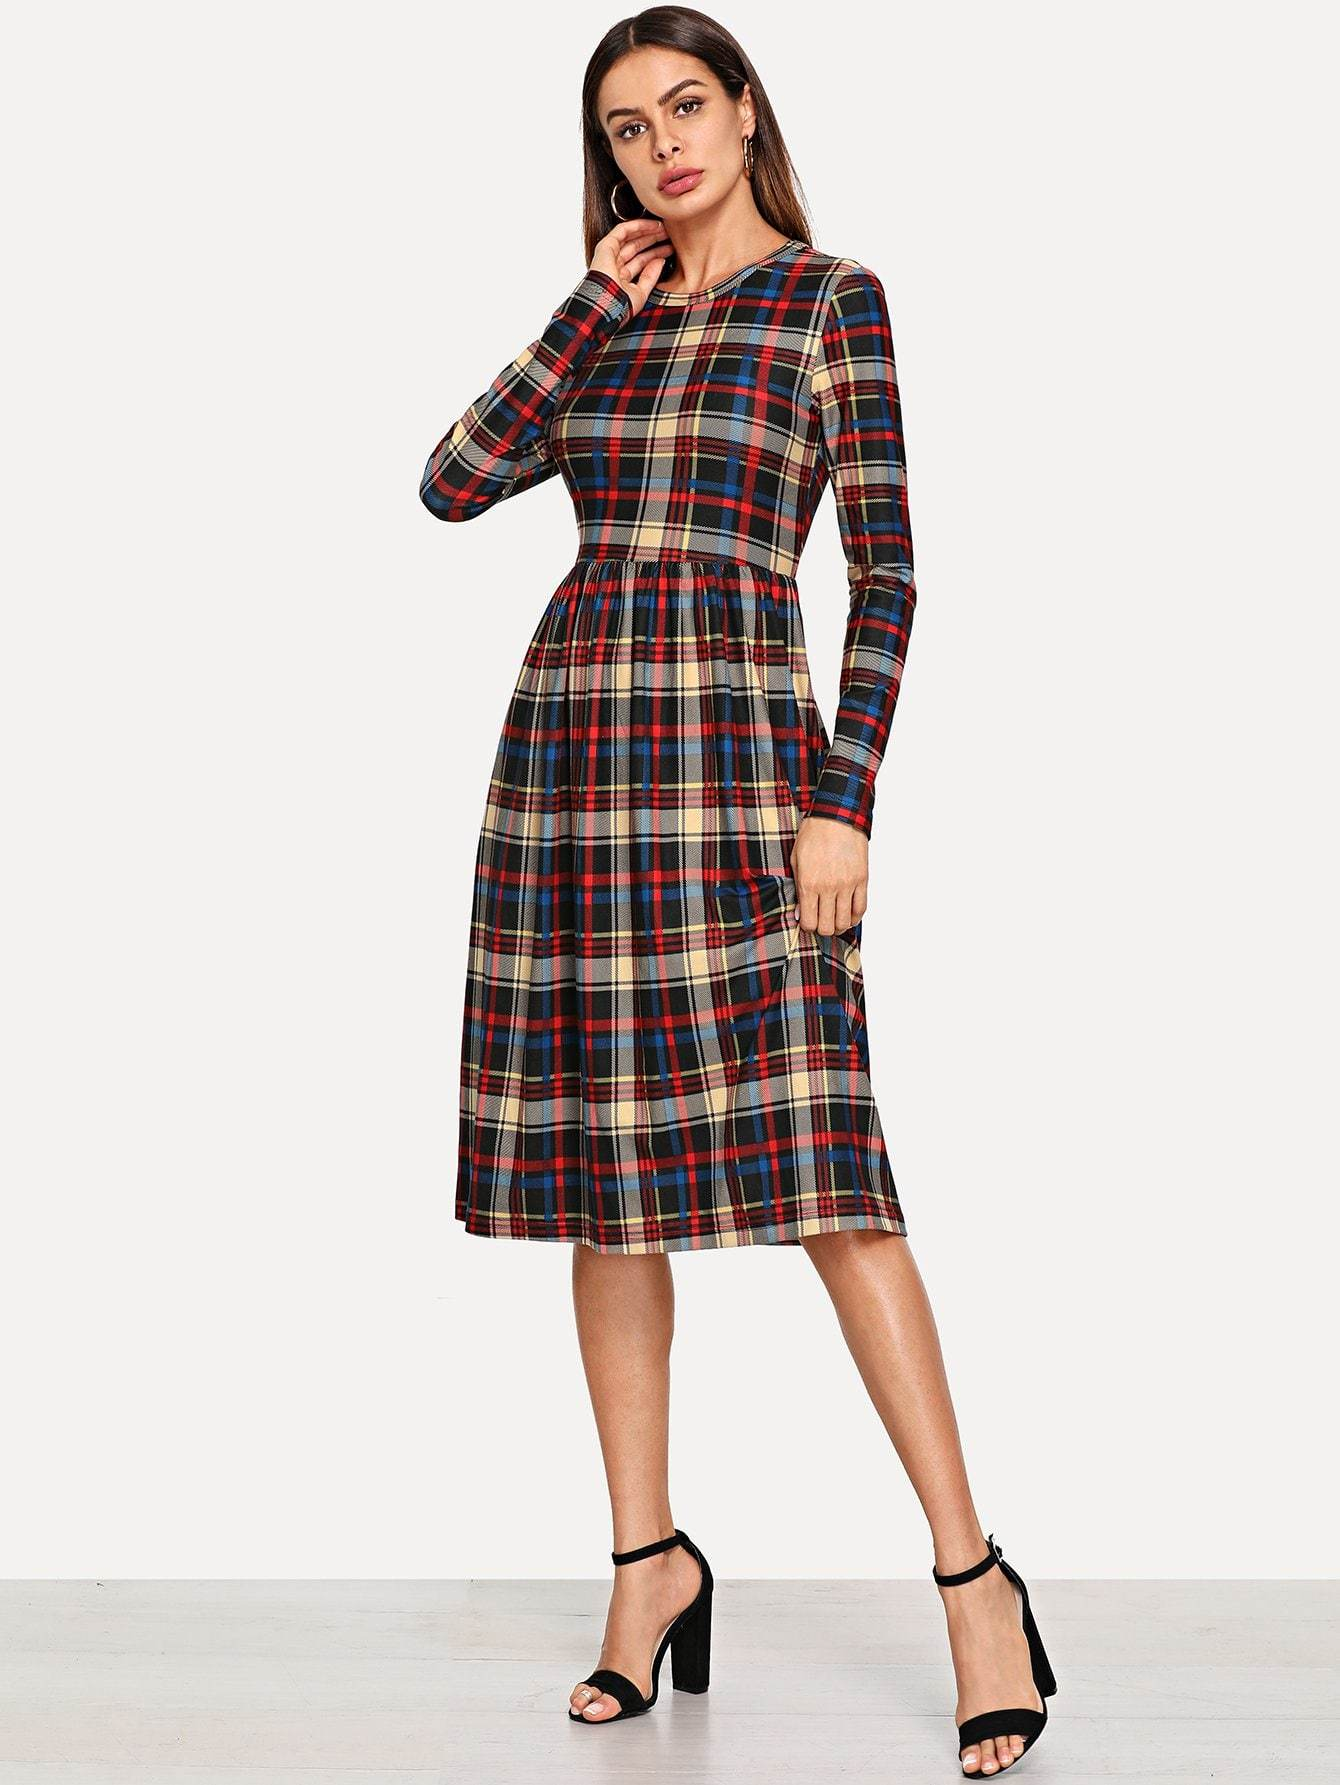 Pocket Side Plaid Dress - LoveSylvester